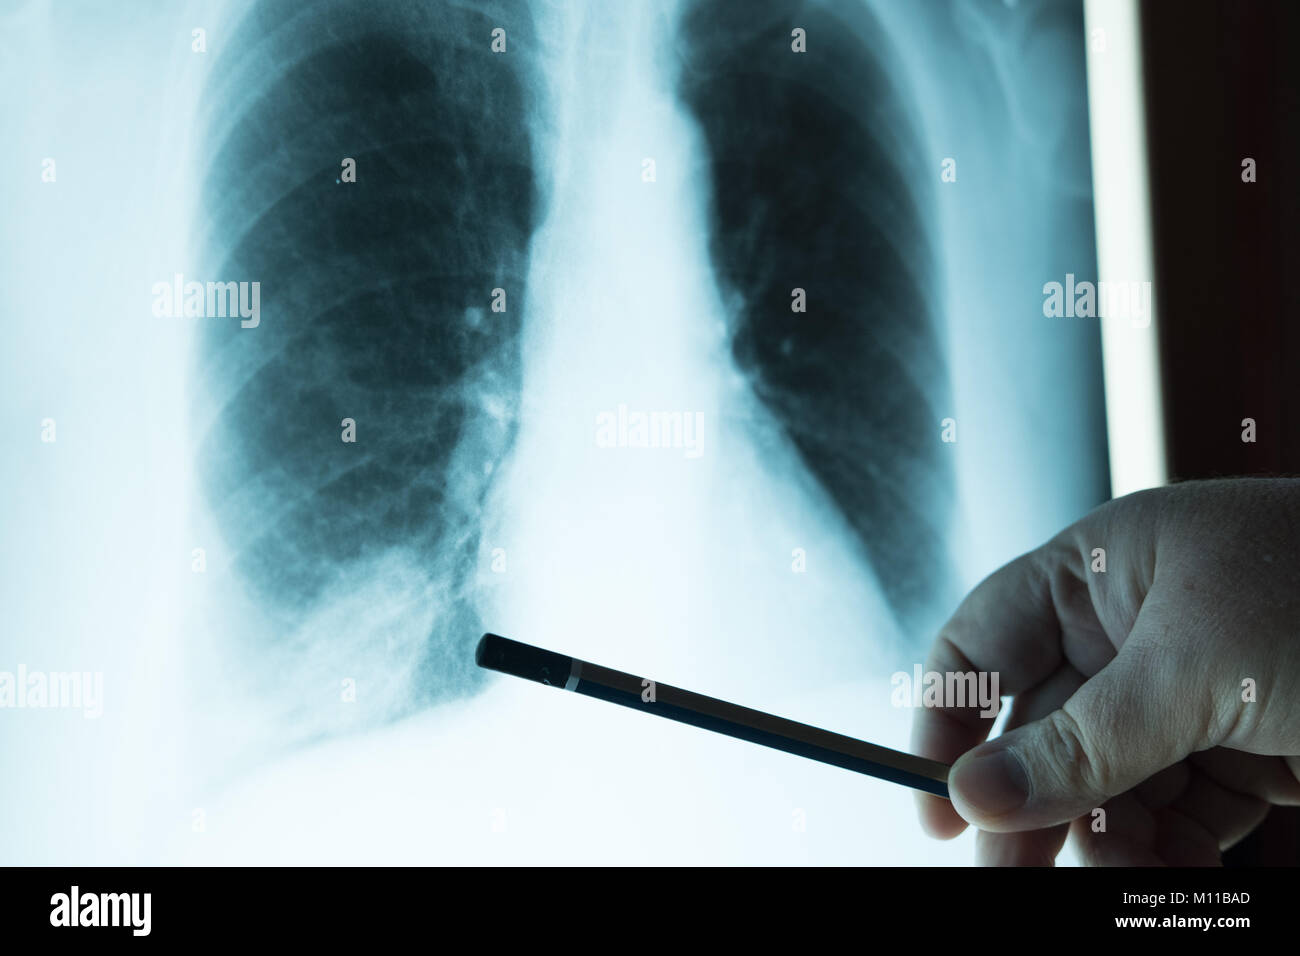 Lung Cancer X Ray Stock Photos Amp Lung Cancer X Ray Stock